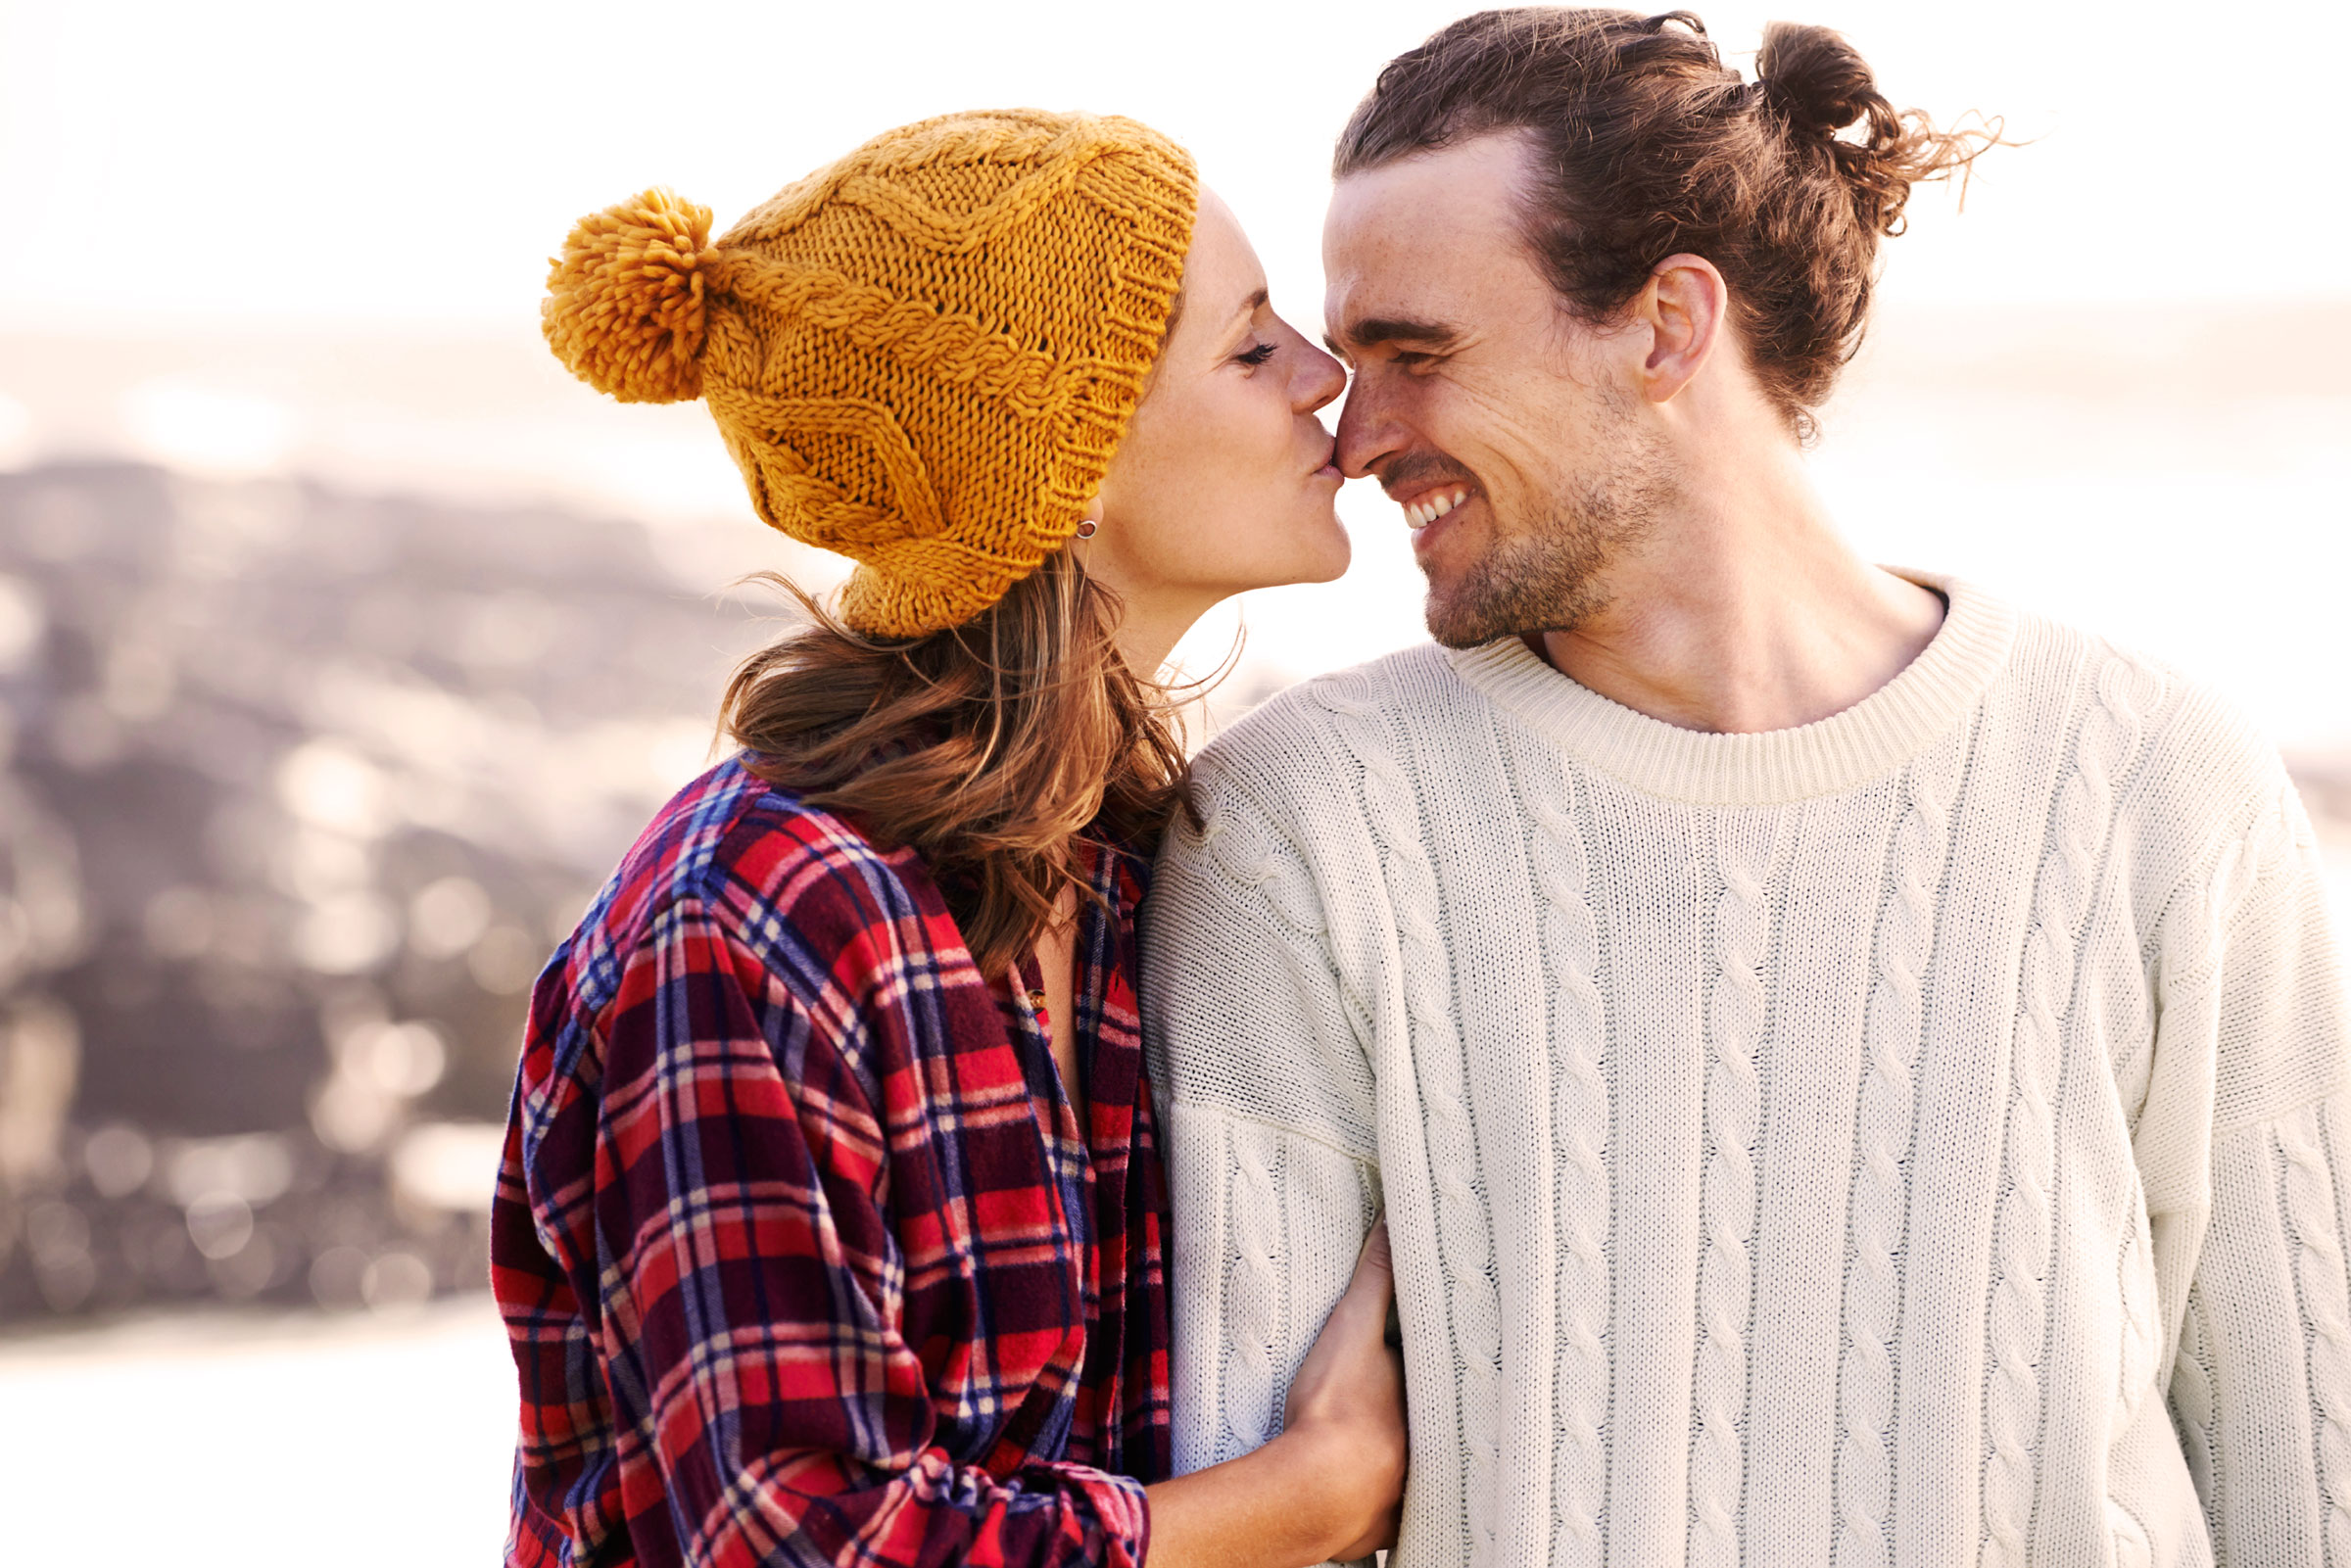 a couple kissing on a hike with a woman in plaid flannel and a man in a cable-knit sweather with a man bun.